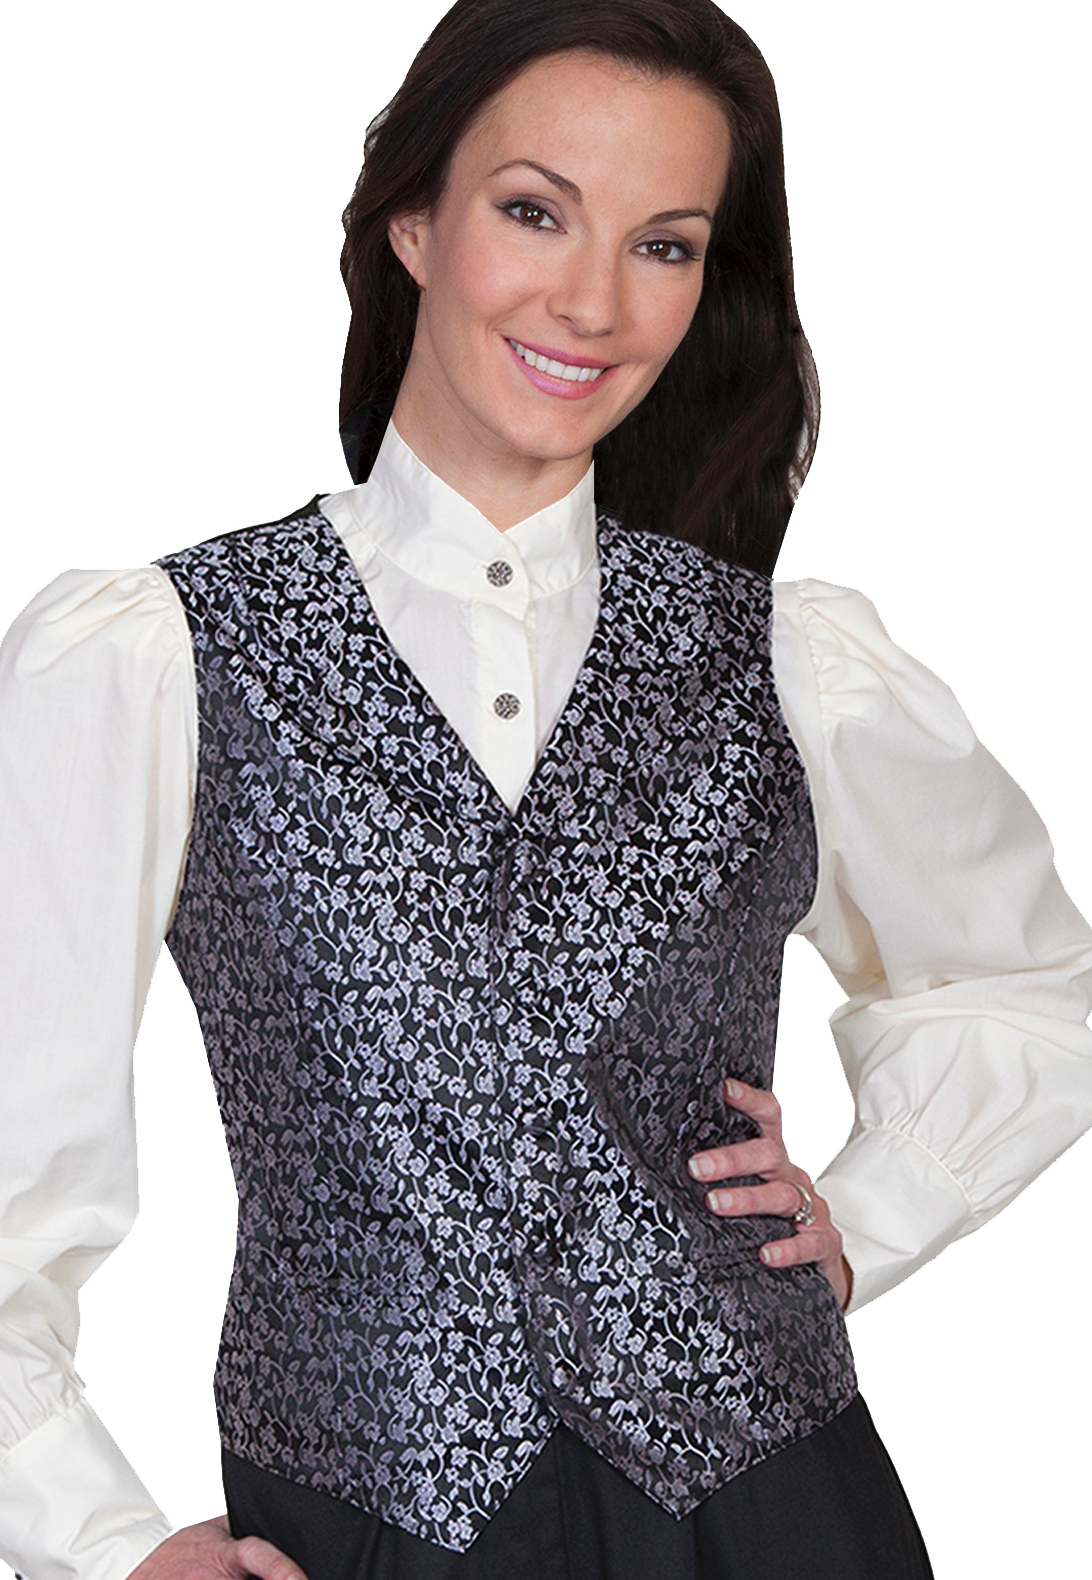 Womens Scully black Rose Vine Paisley Western Vest, Womens Victorian vest, scully western vest, scully vest, 1800's womens vest, womens 1800's western vest, 1800's vest for women